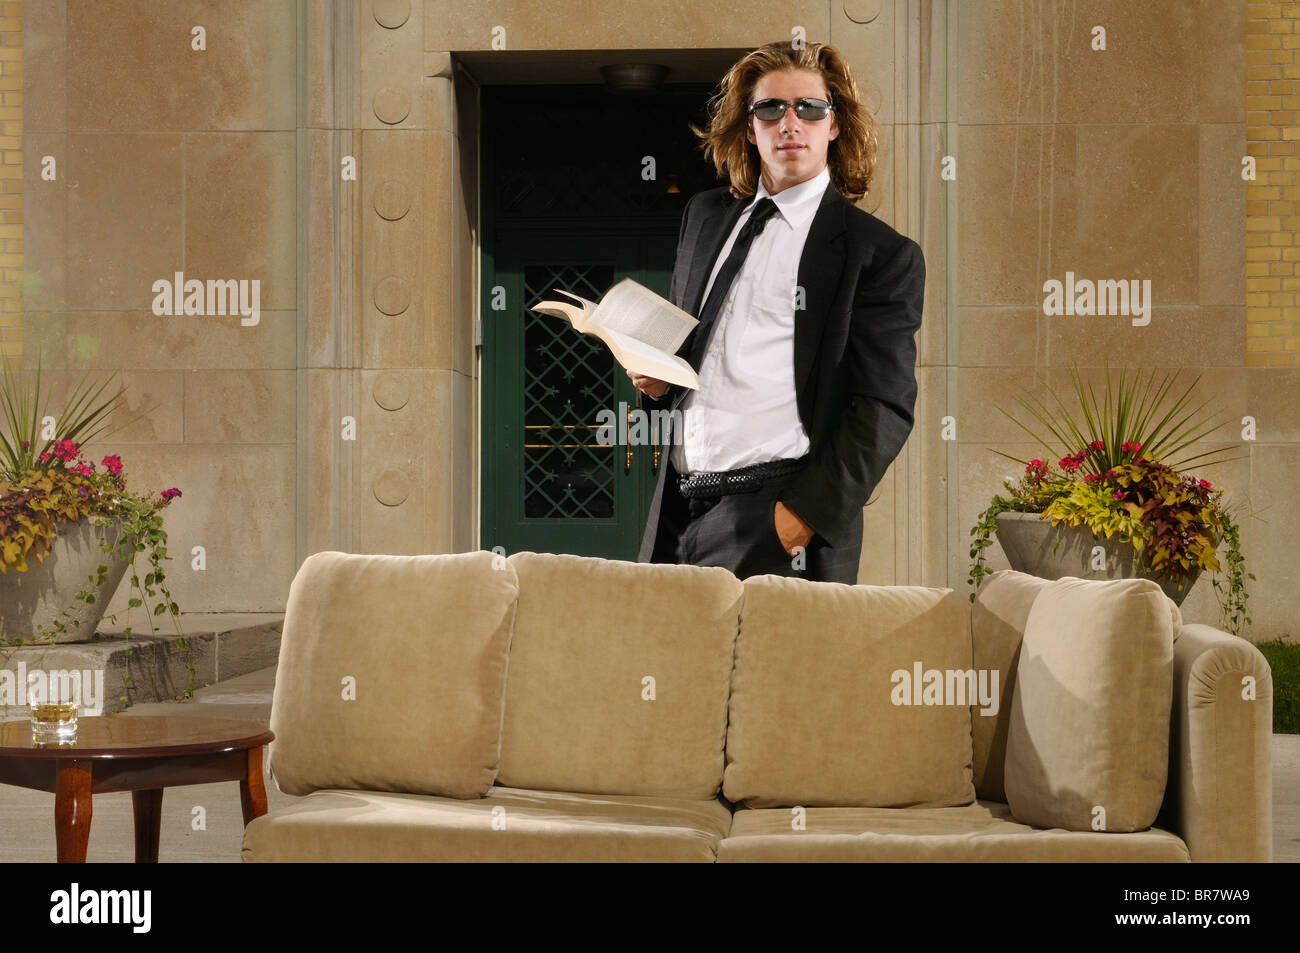 Wealthy young man with long blond hair in suit behind a couch with a paperback book on an outdoor terrace at a mansion - Stock Image